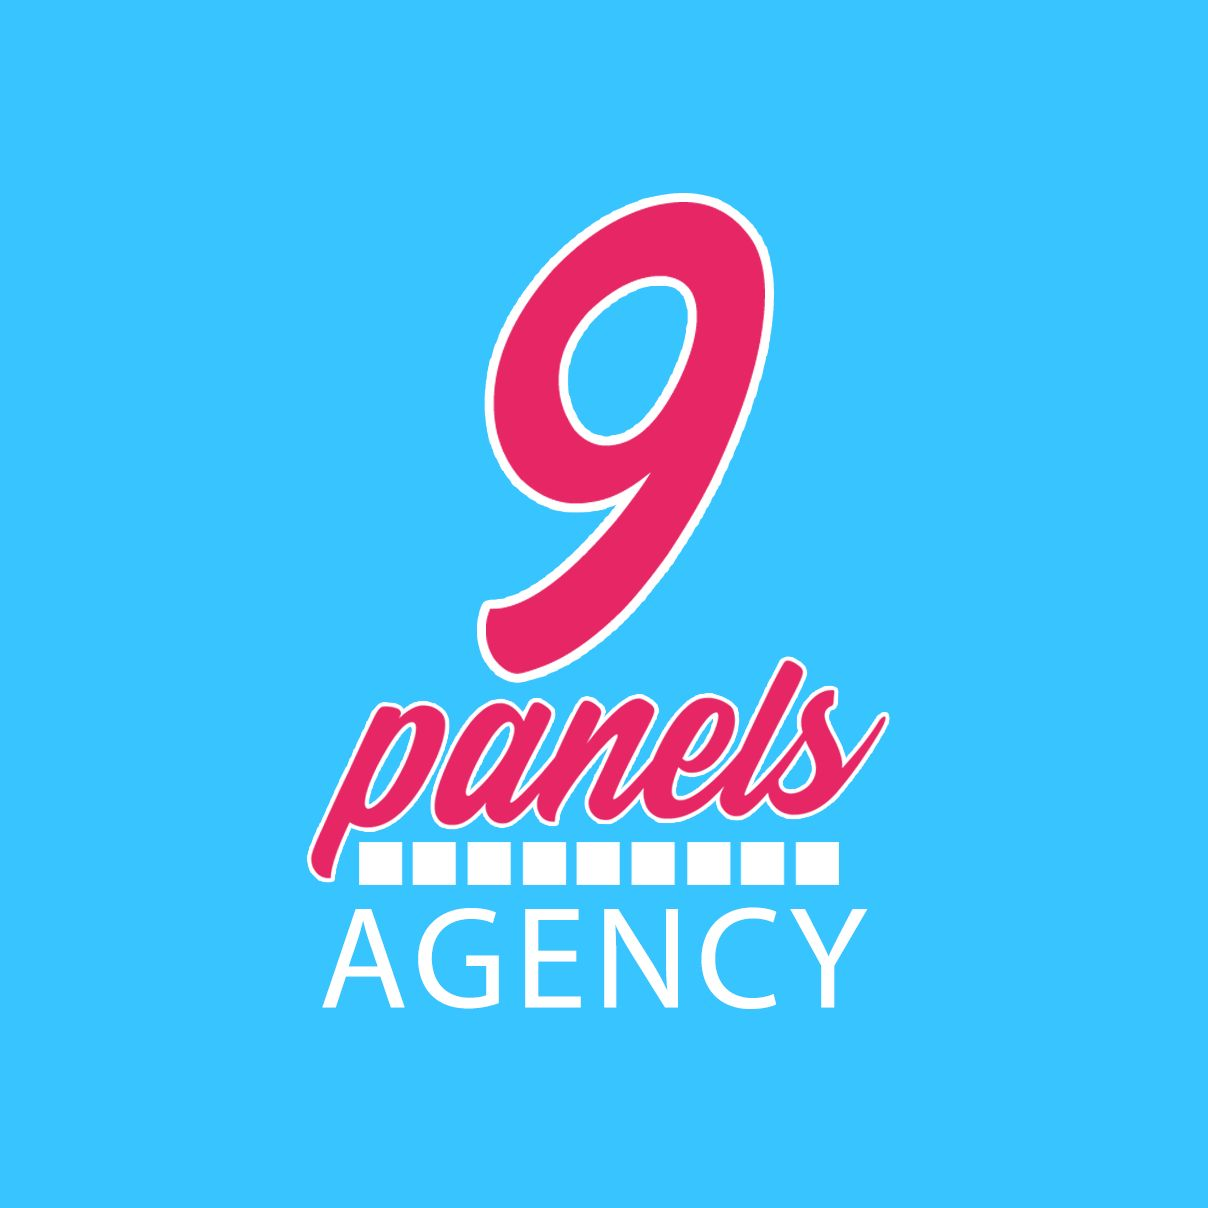 9 Panels Agency, the UK's First Dedicated Graphic Novel Literary Agency, Launches